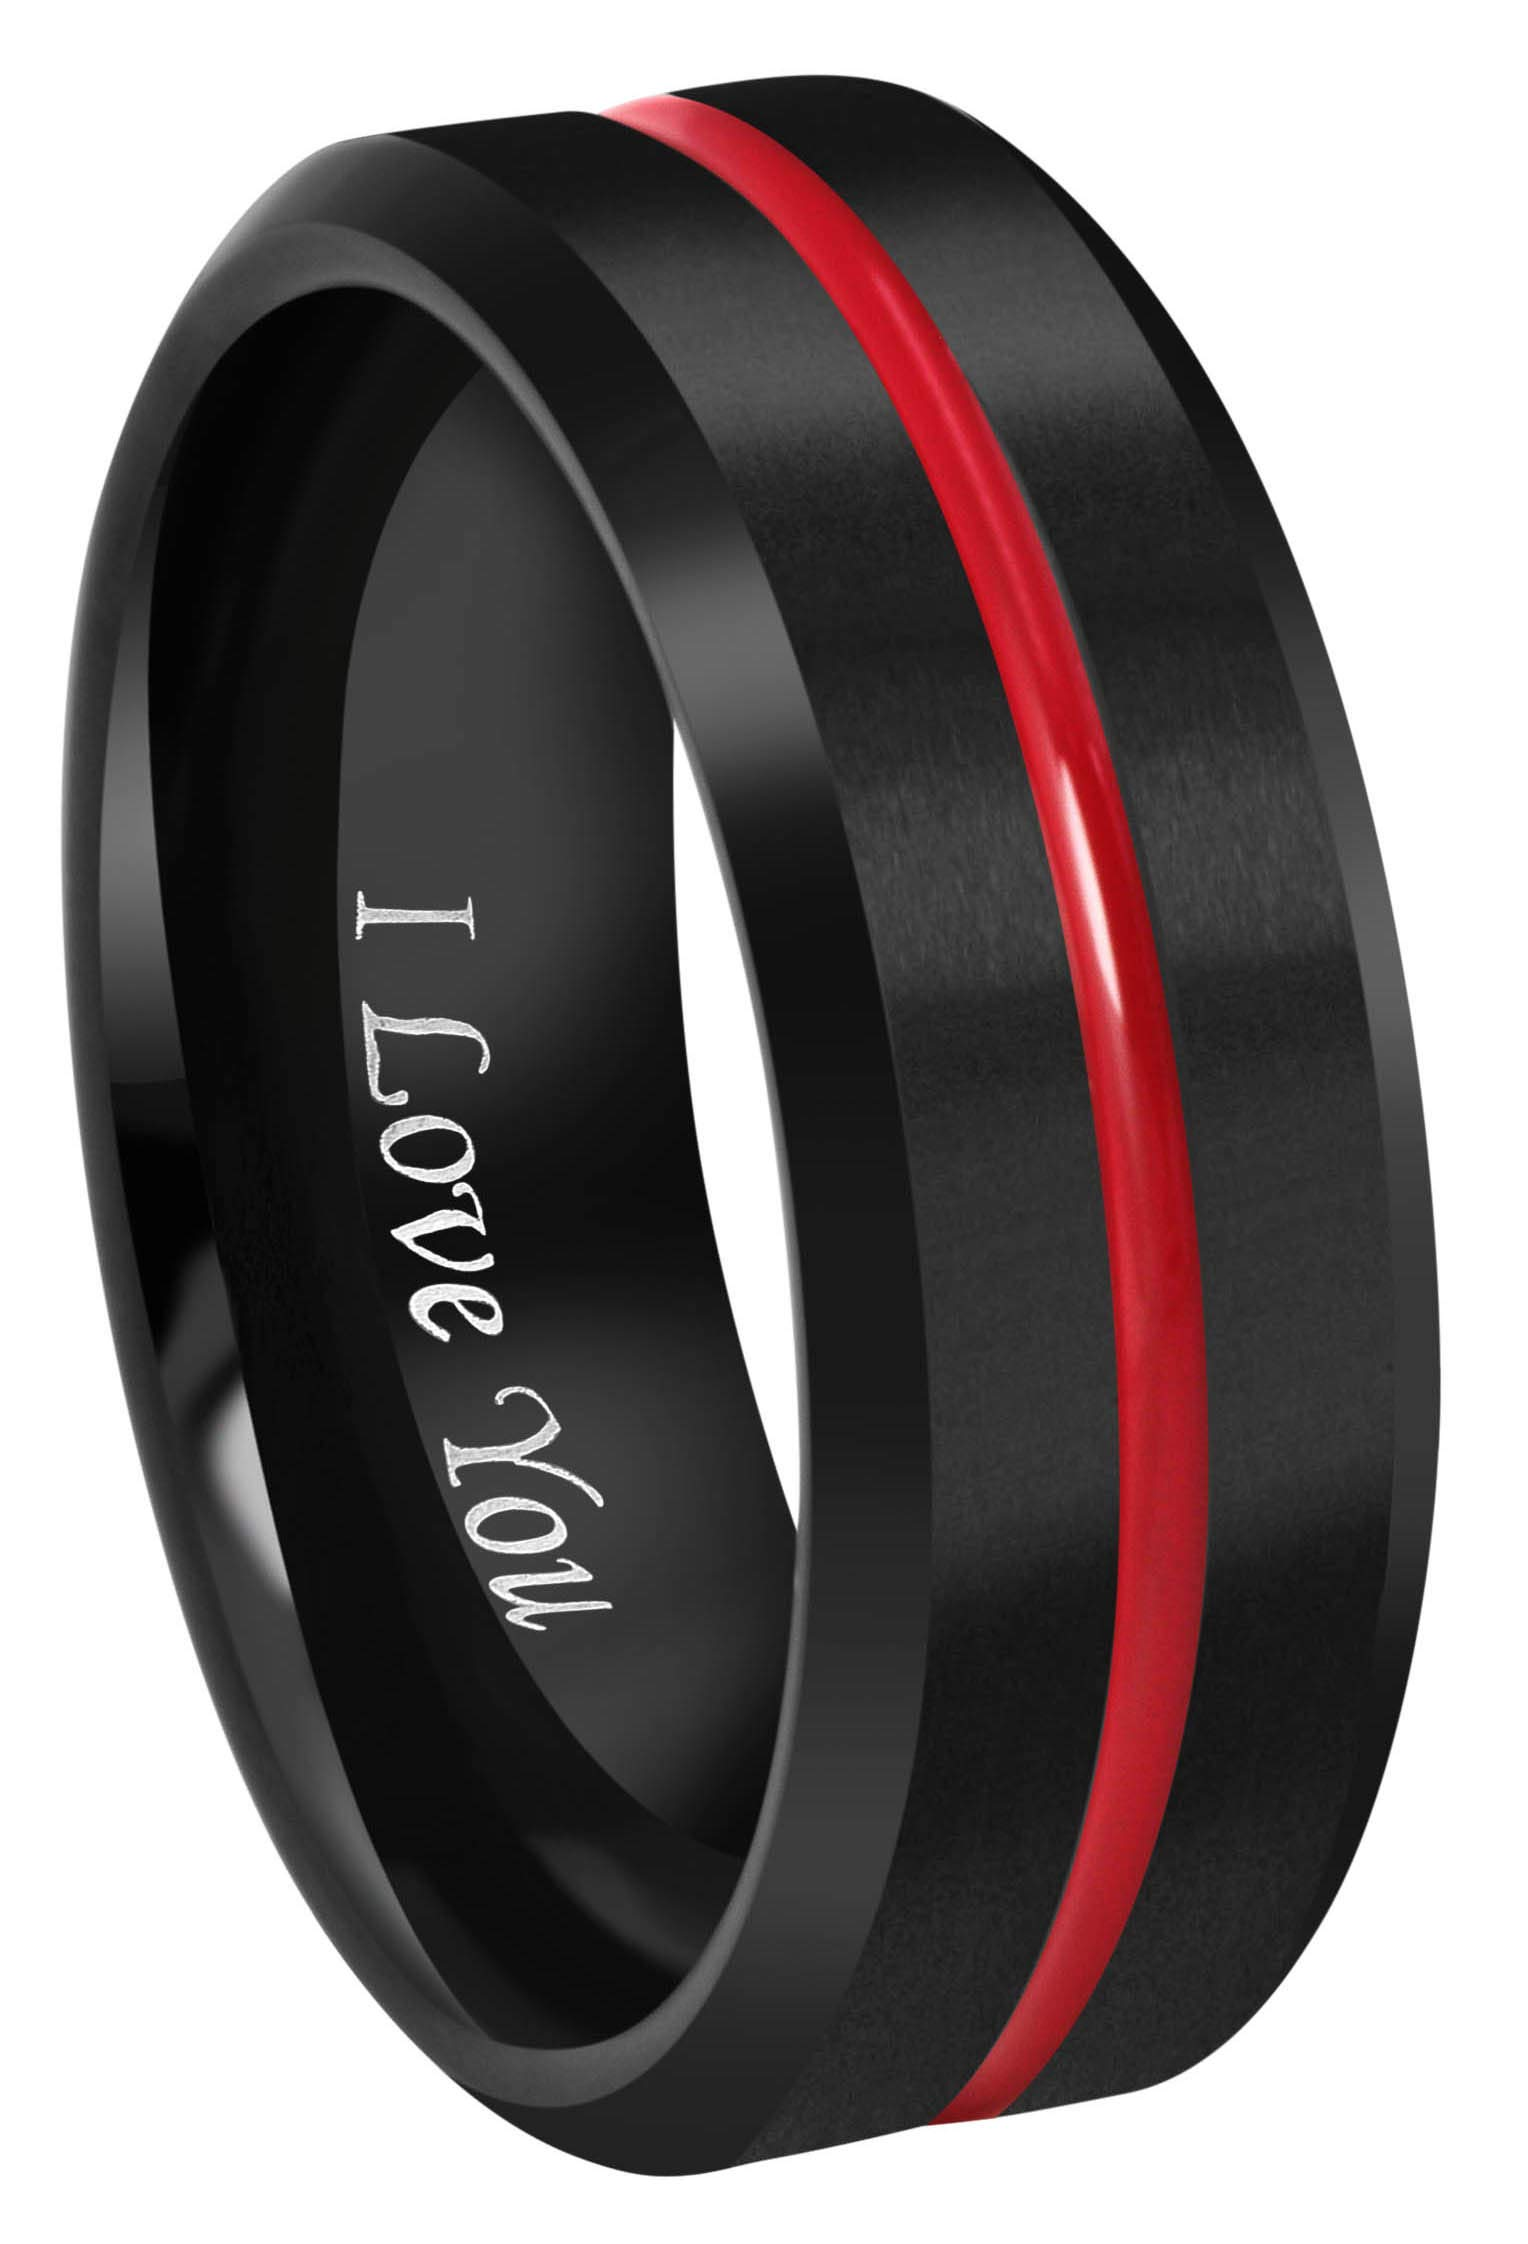 CROWNAL 8mm Thin Red Groove Black Brushed Tungsten Carbide Wedding Band Ring Comfort Fit Engraved I Love You Size 5 to 17 (8mm,16) by CROWNAL (Image #1)